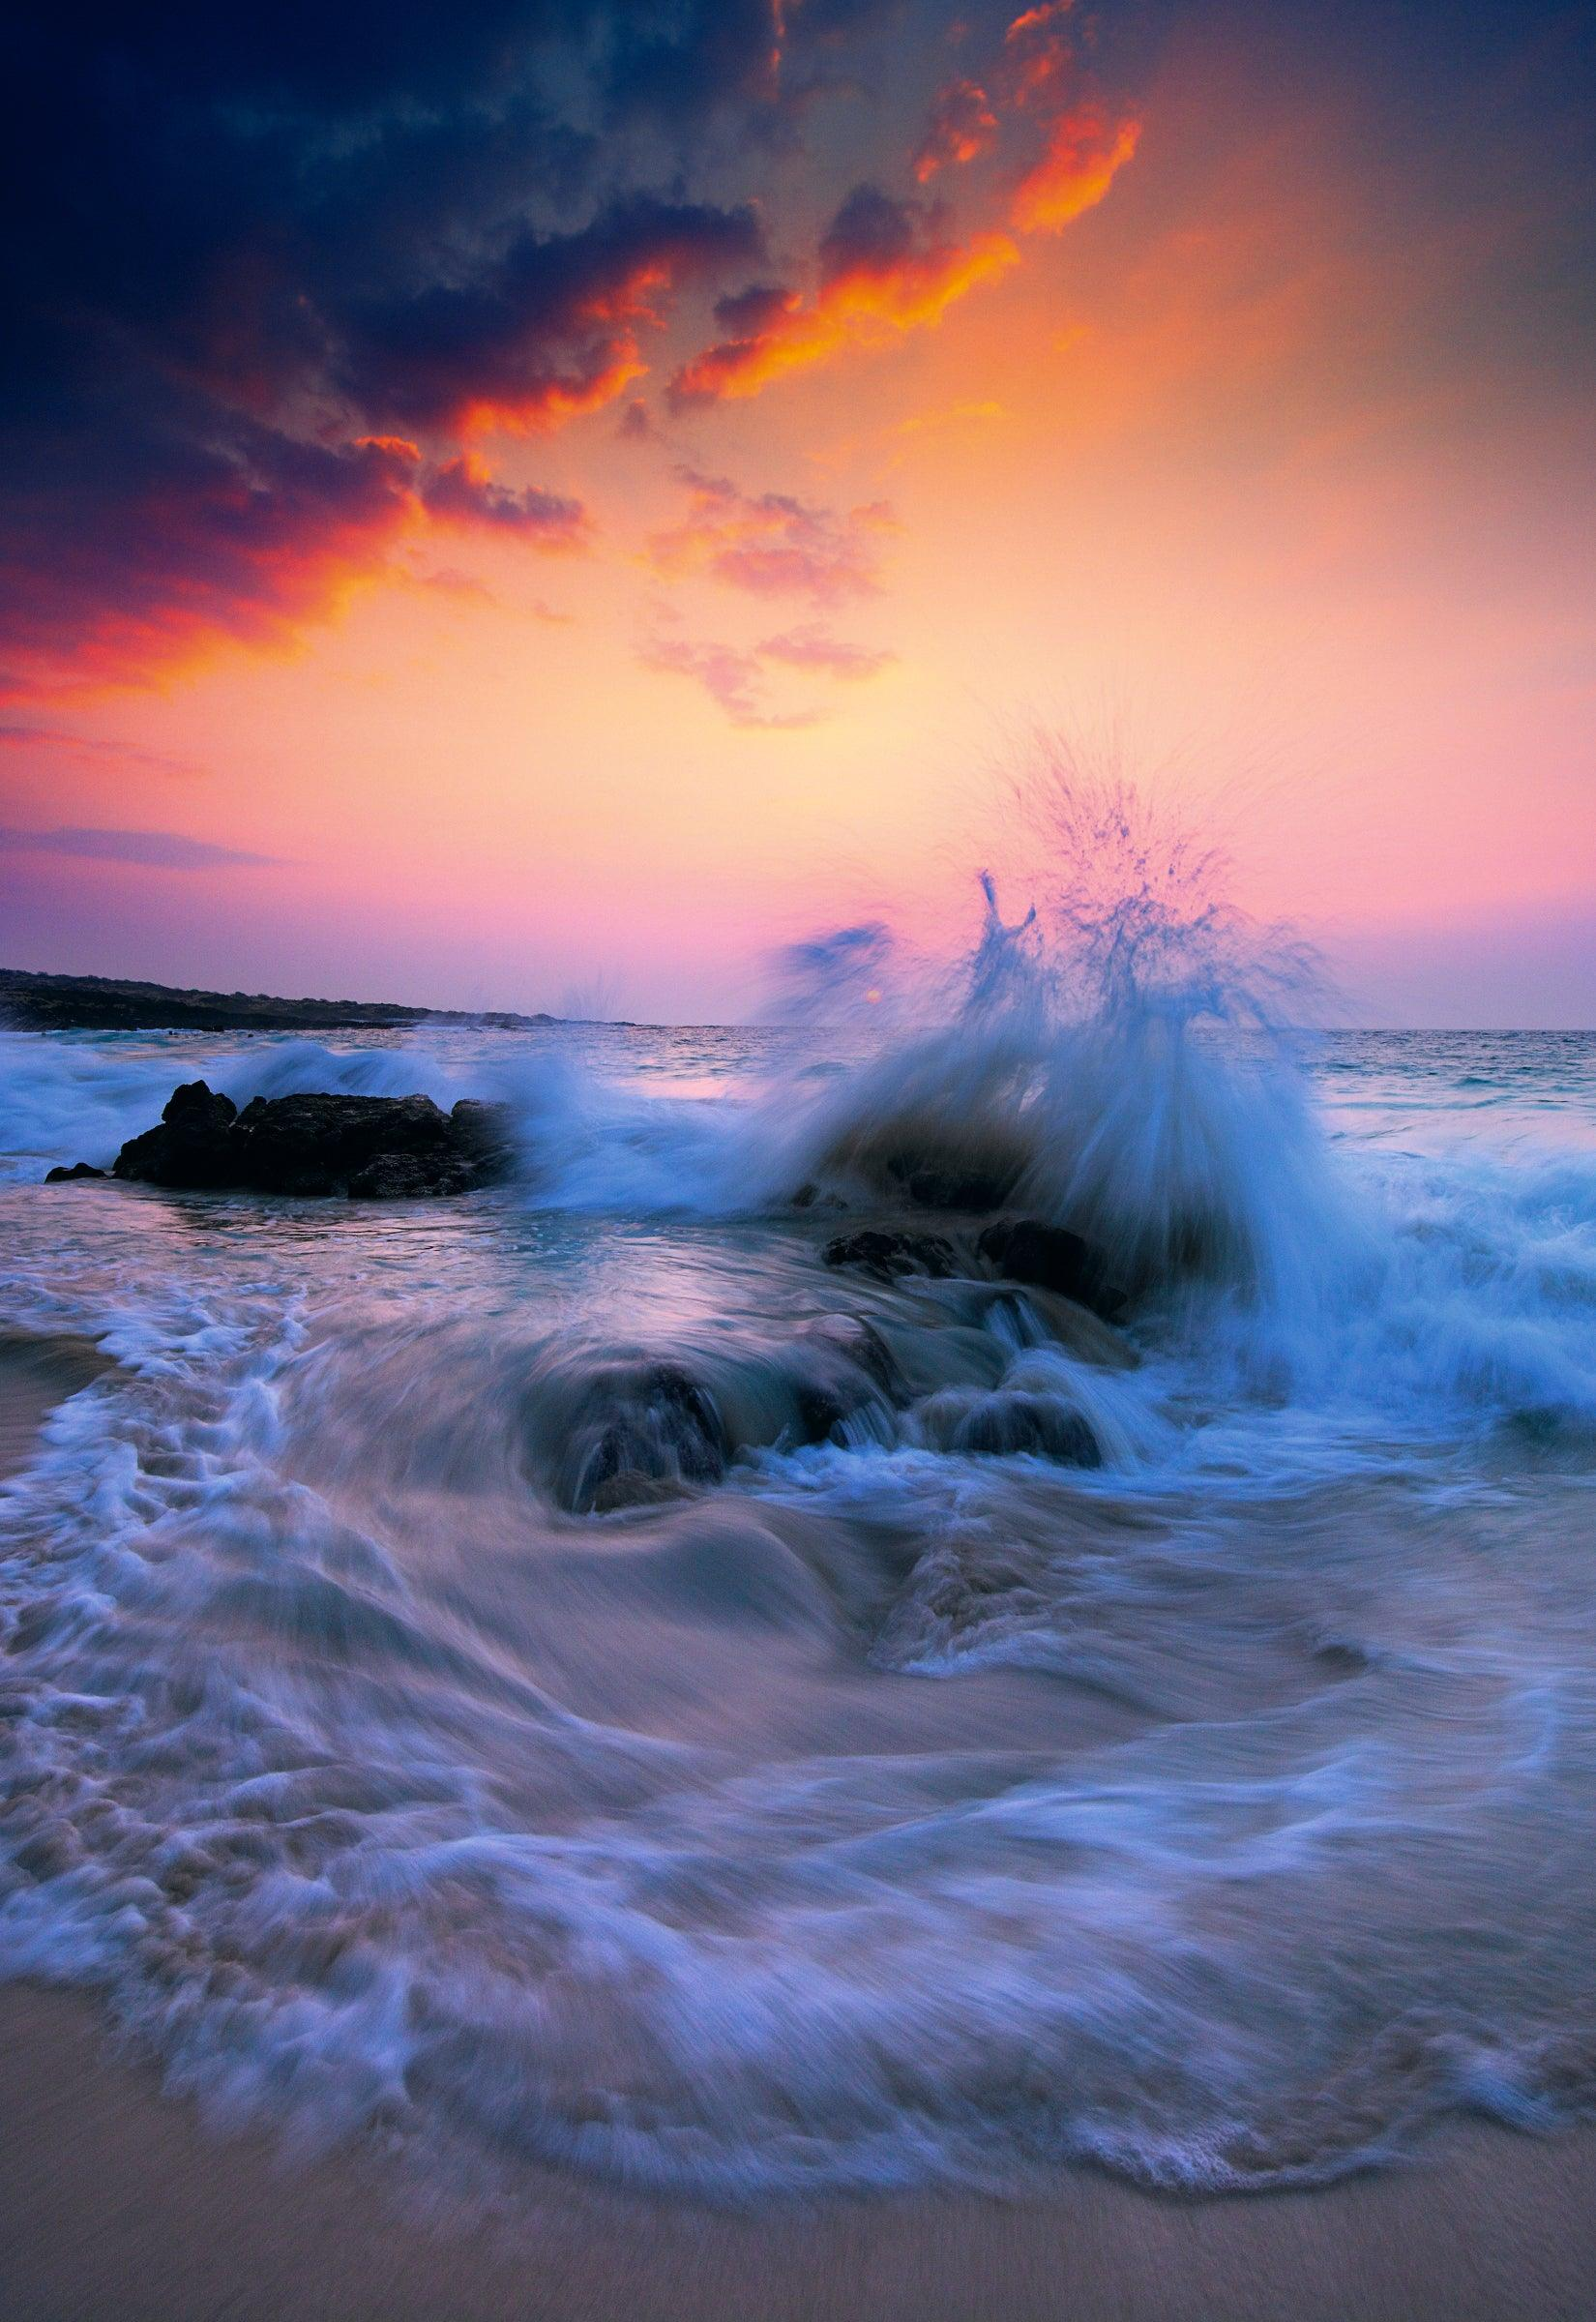 Waves crashing on black rocks on a sand beach on The Big Island Hawaii during a cloudy sunset